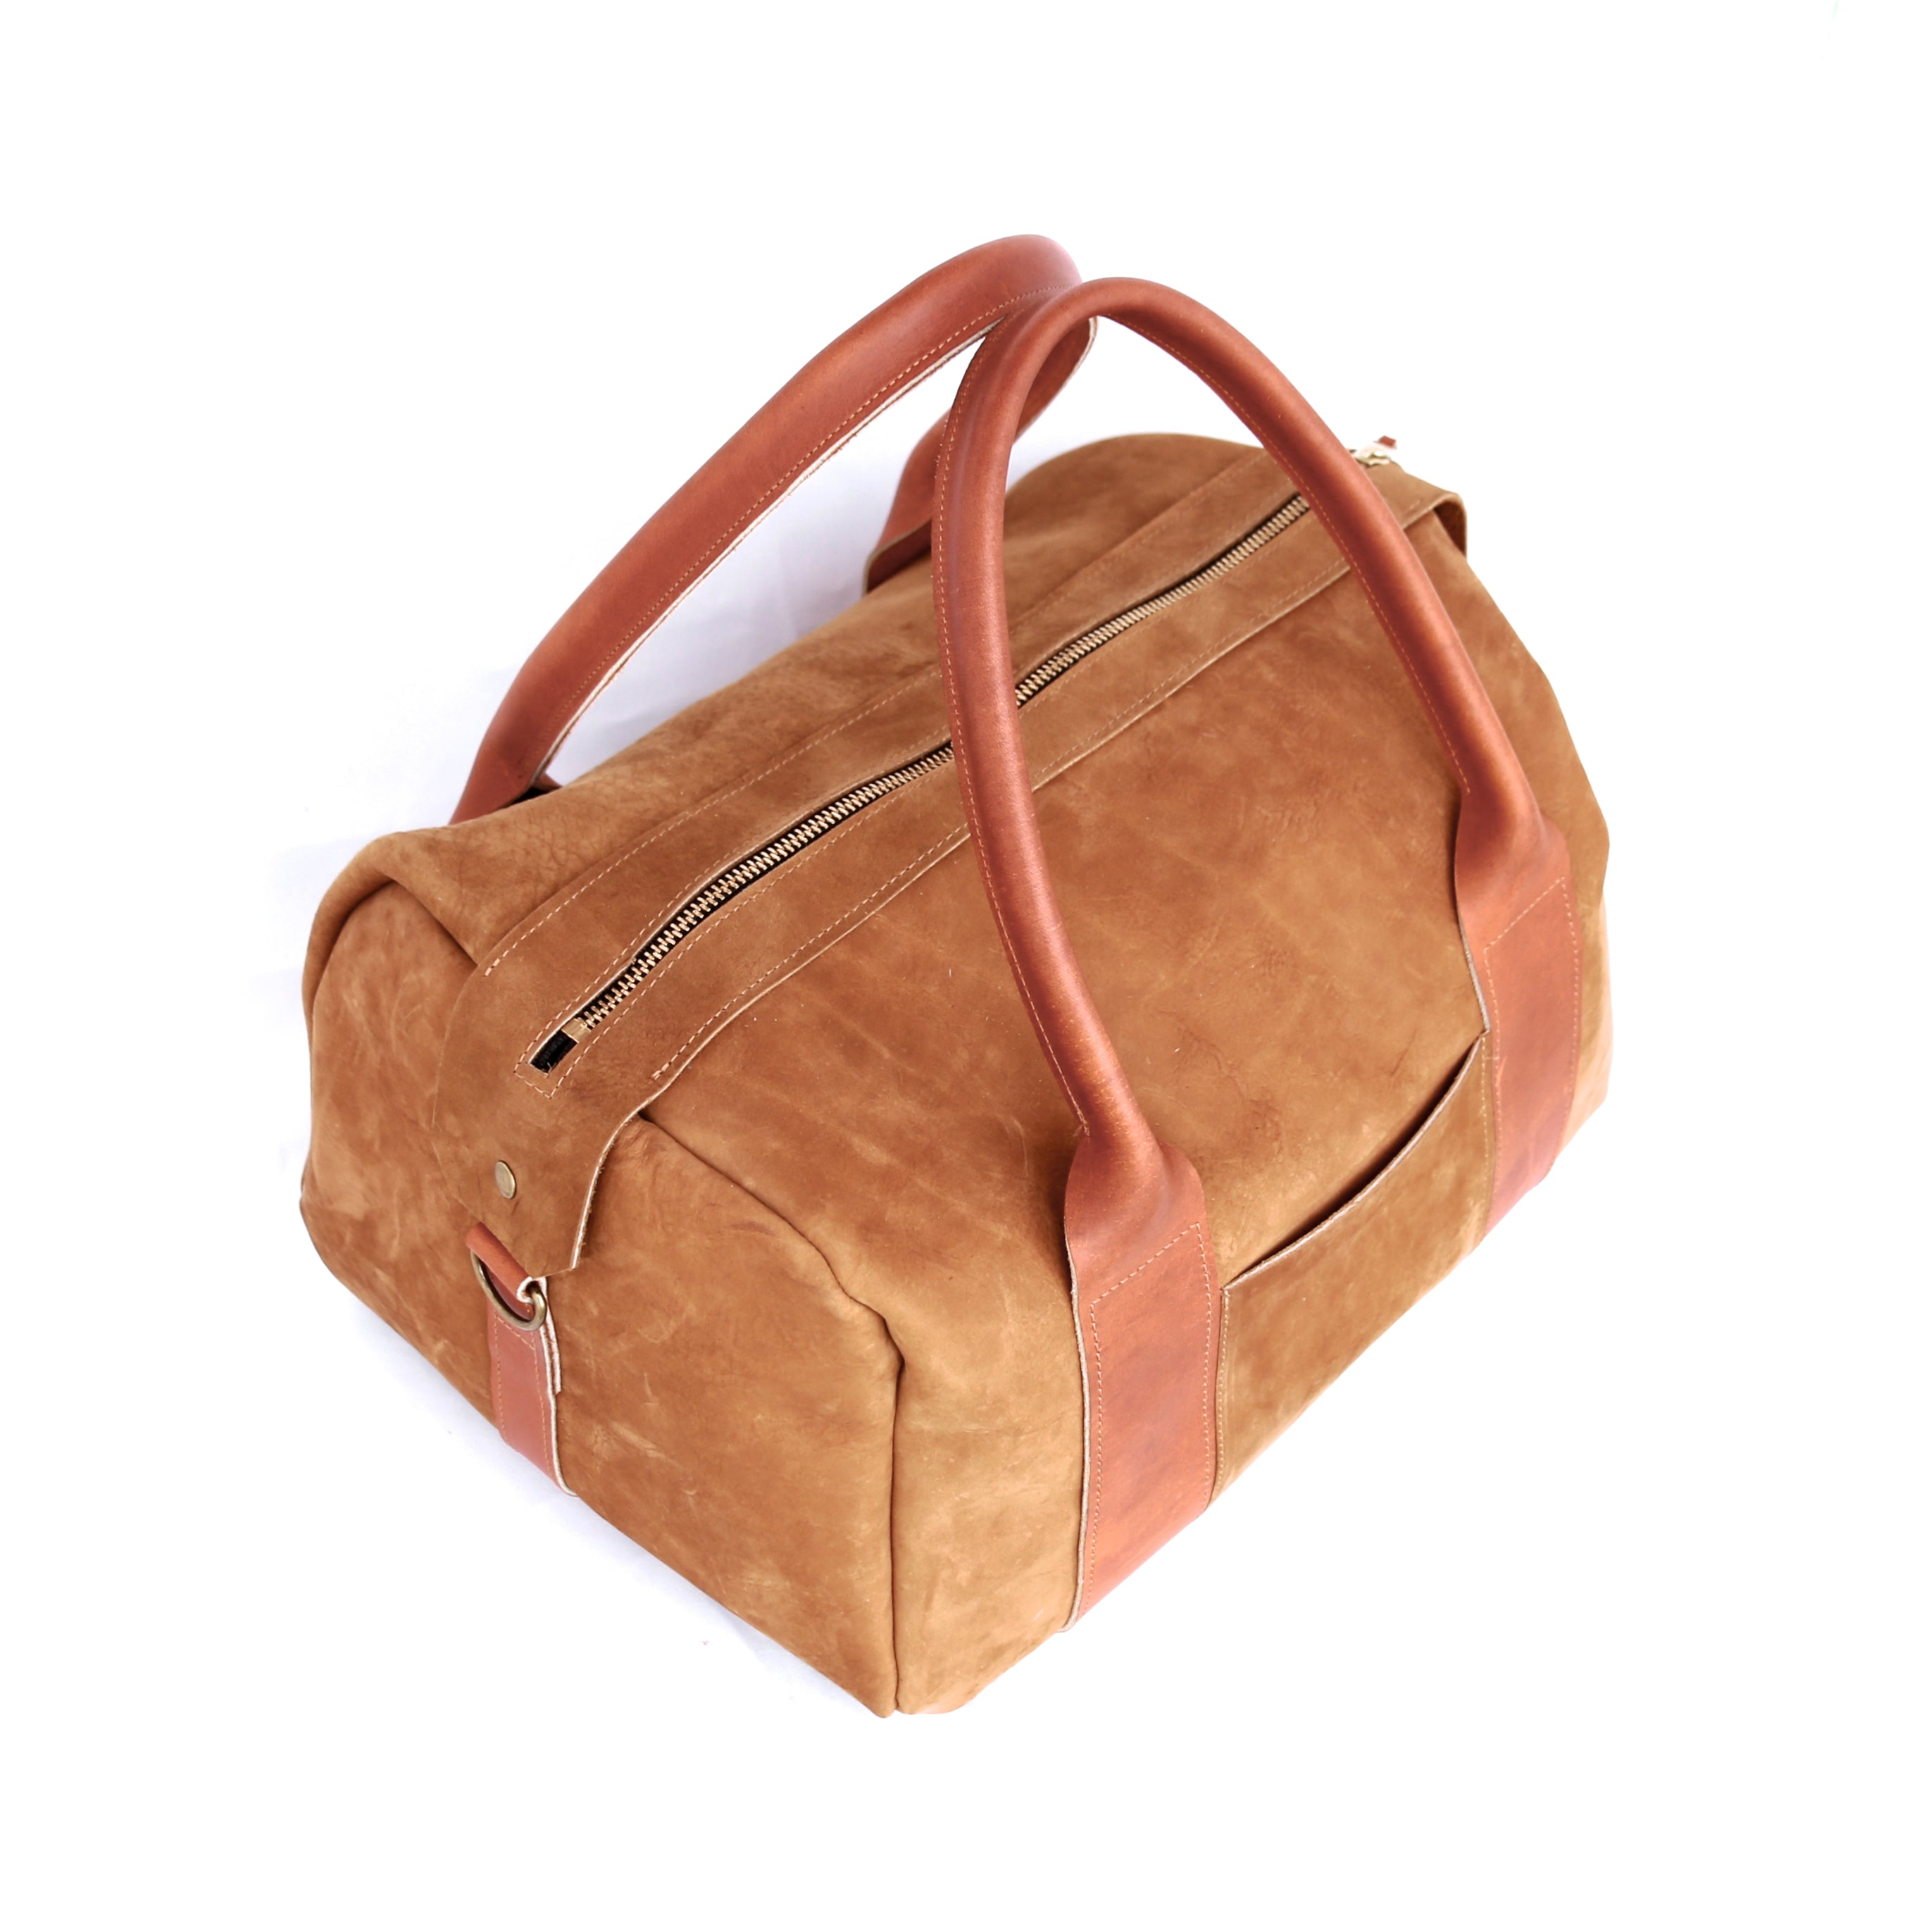 The Overnighter in Tobacco Leather - handcrafted by Market Canvas Leather in Tofino, BC, Canada